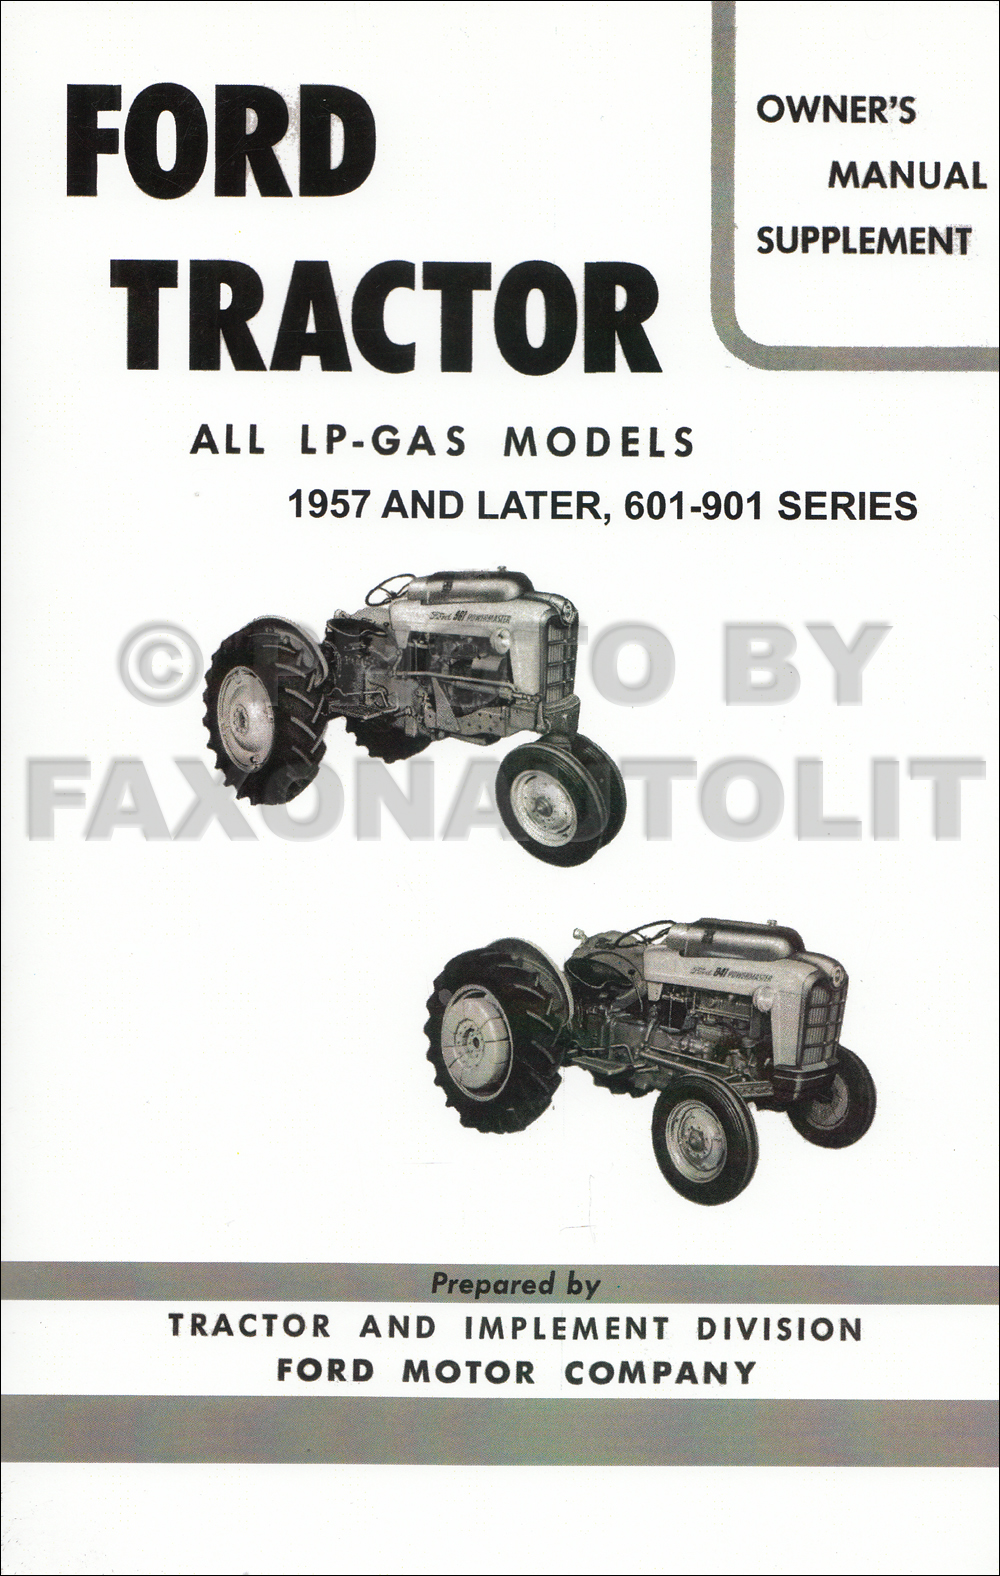 Manuals Ford Tractor Poster 1932-1986 Media